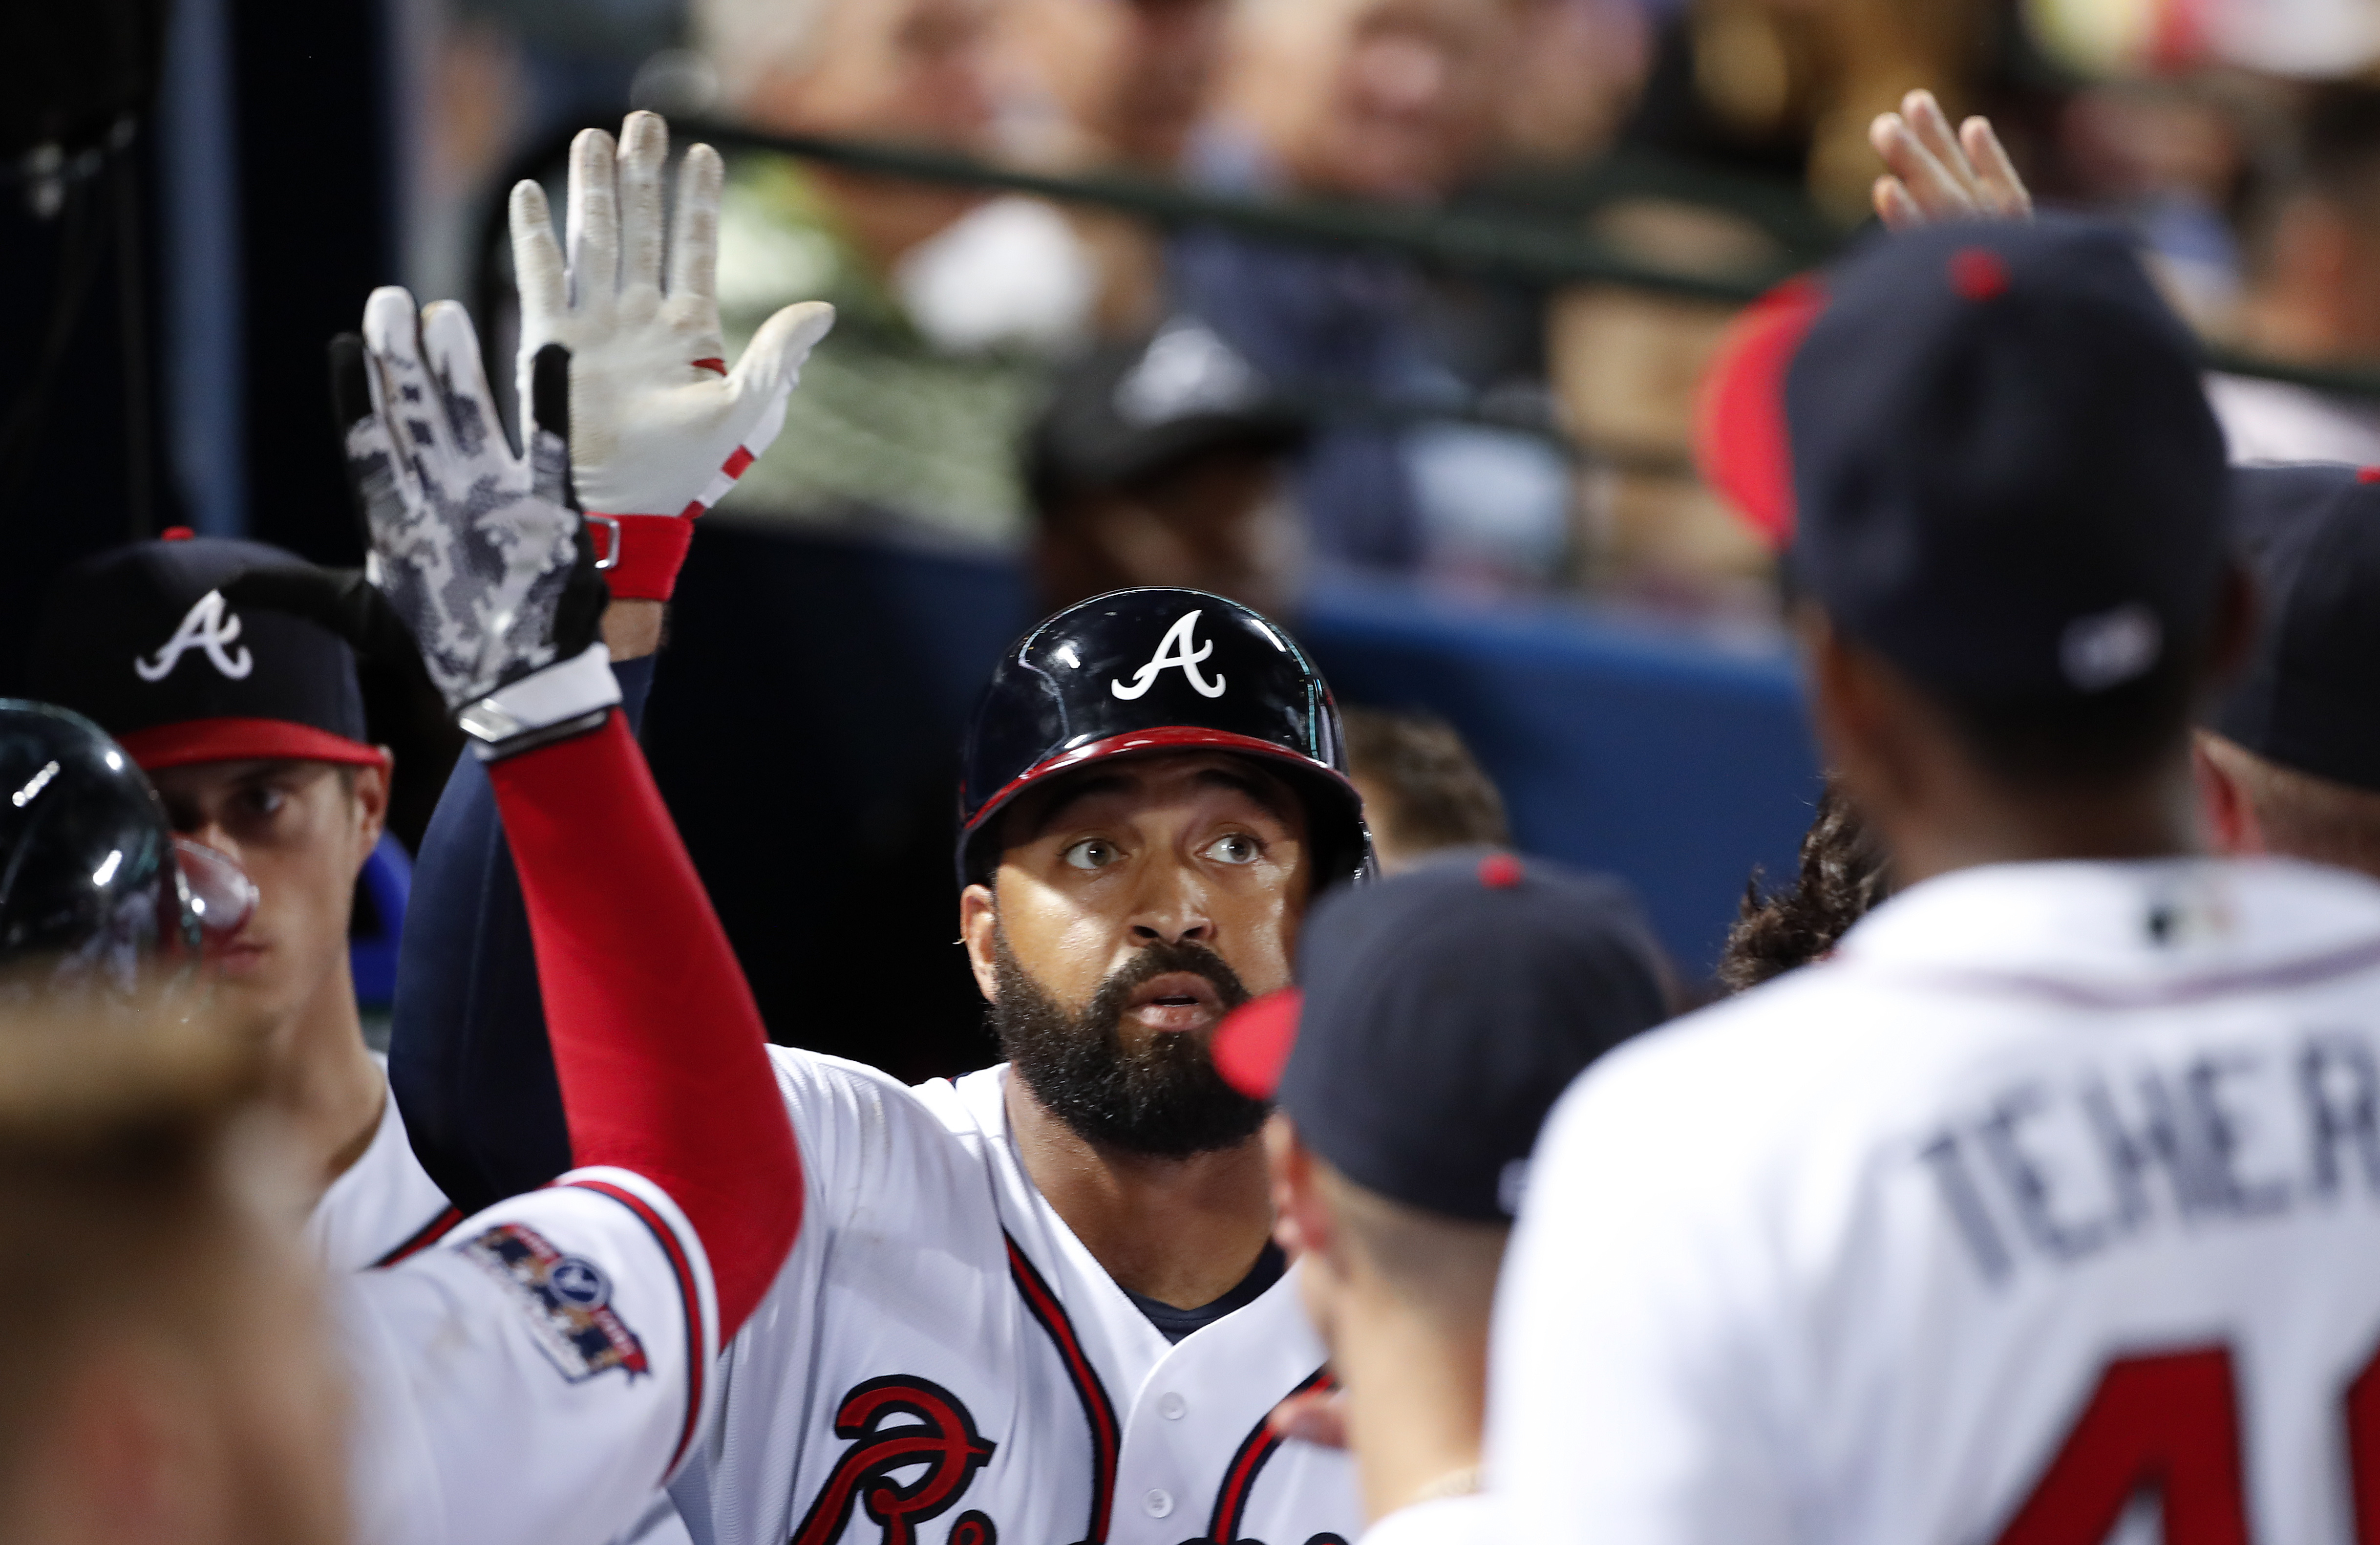 Atlanta Braves' Matt Kemp celebrates with his teammates after hitting a solo-home run in the fourth inning of baseball game against the Miami Marlins, Tuesday, Sept. 13, 2016, in Atlanta. (AP Photo/John Bazemore)